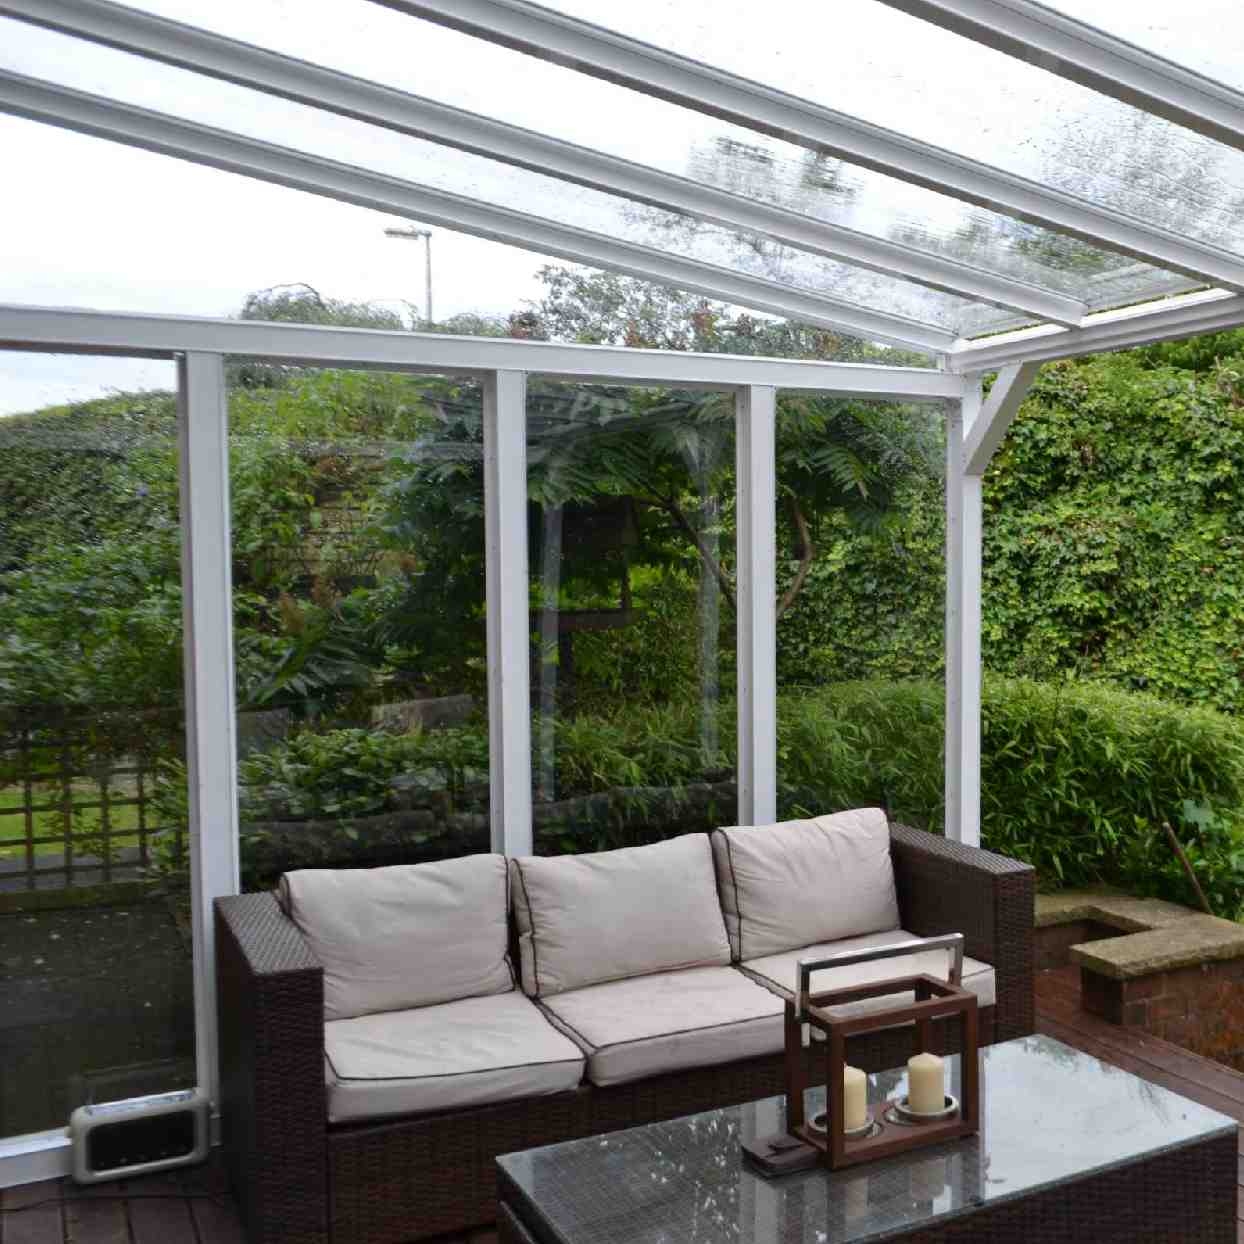 Buy Omega Verandah with 6mm Glass Clear Plate Polycarbonate Glazing - 3.5m (W) x 3.5m (P), (3) Supporting Posts online today